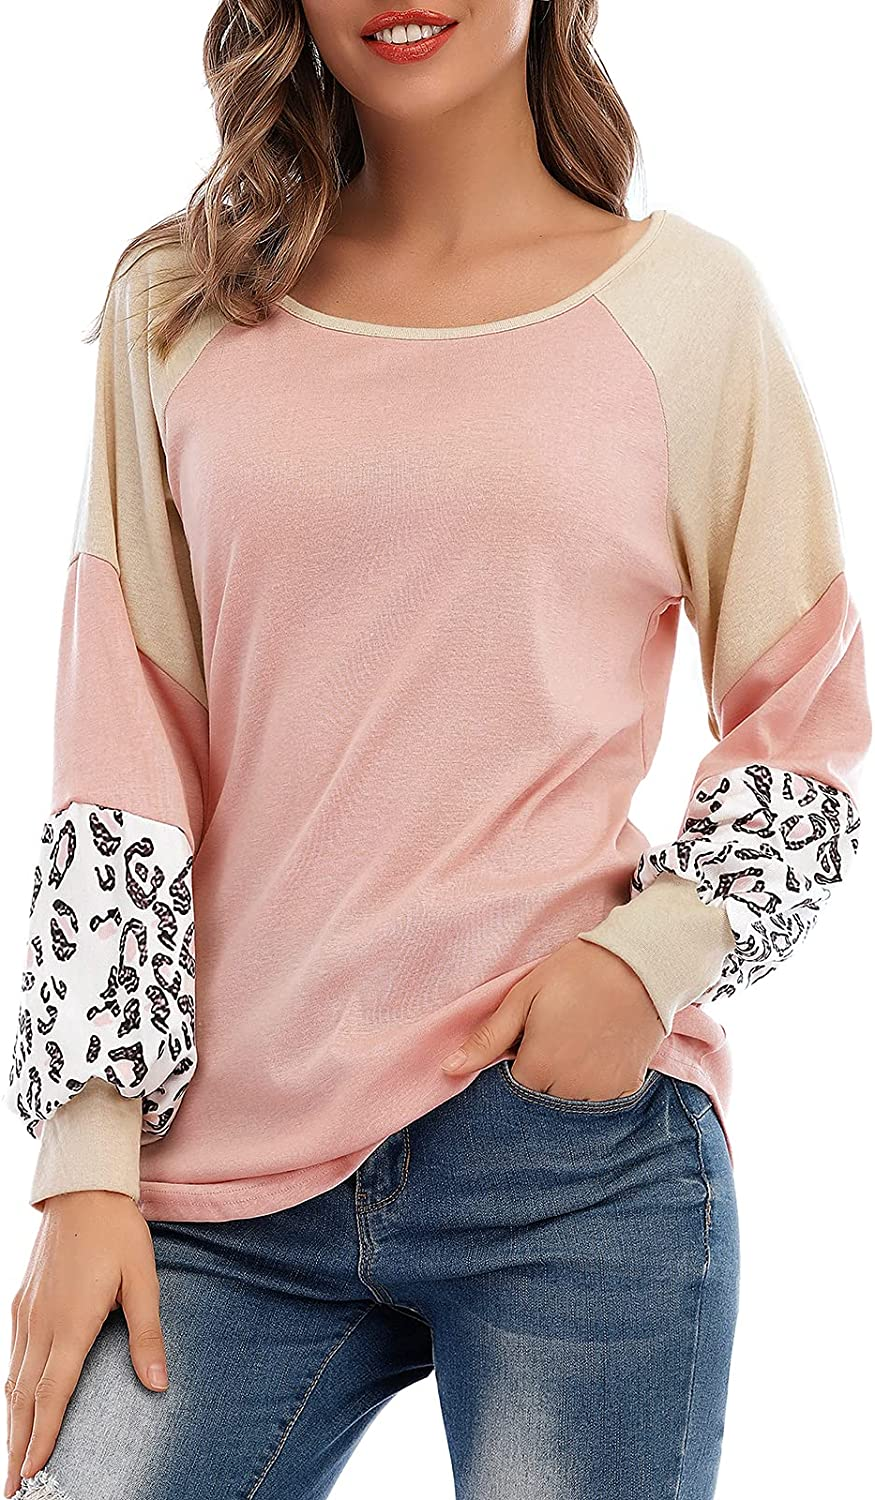 Century Star Long Sleeve Shirts for Women Casual Tunics Loose Fit Pullover Round Neck Sweatshirt Color Block Tops